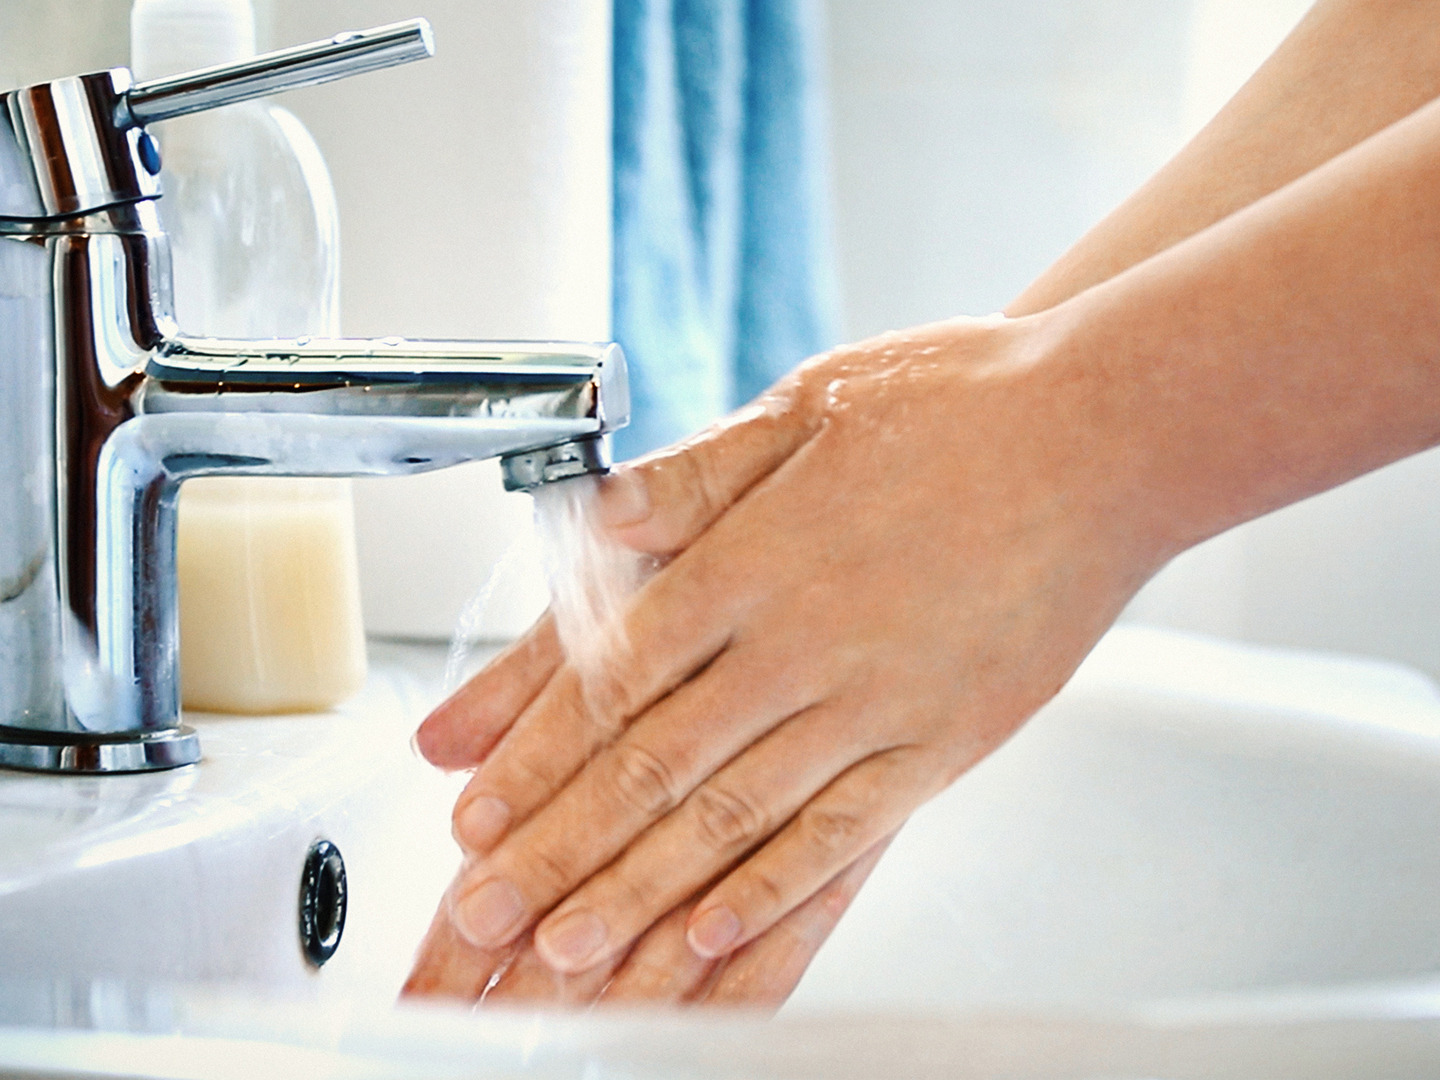 Side view of unrecognizable caucasian woman washing her hands with soap in bathroom. Water is pouring over her hands, visible bluish sink in background.